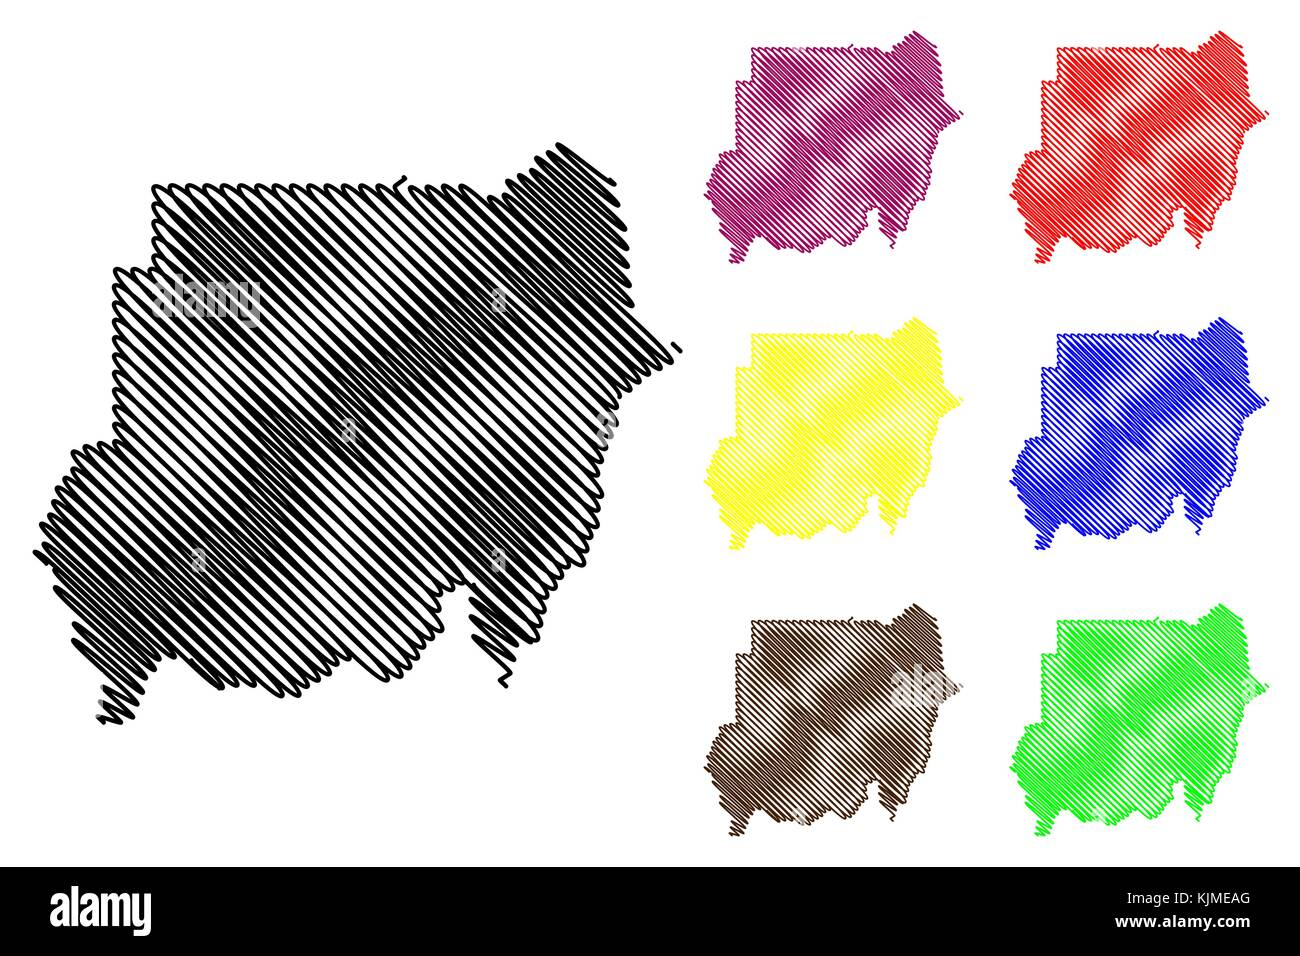 North Sudan Map Vector Illustration Scribble Sketch Republic Of - Republic of the sudan map